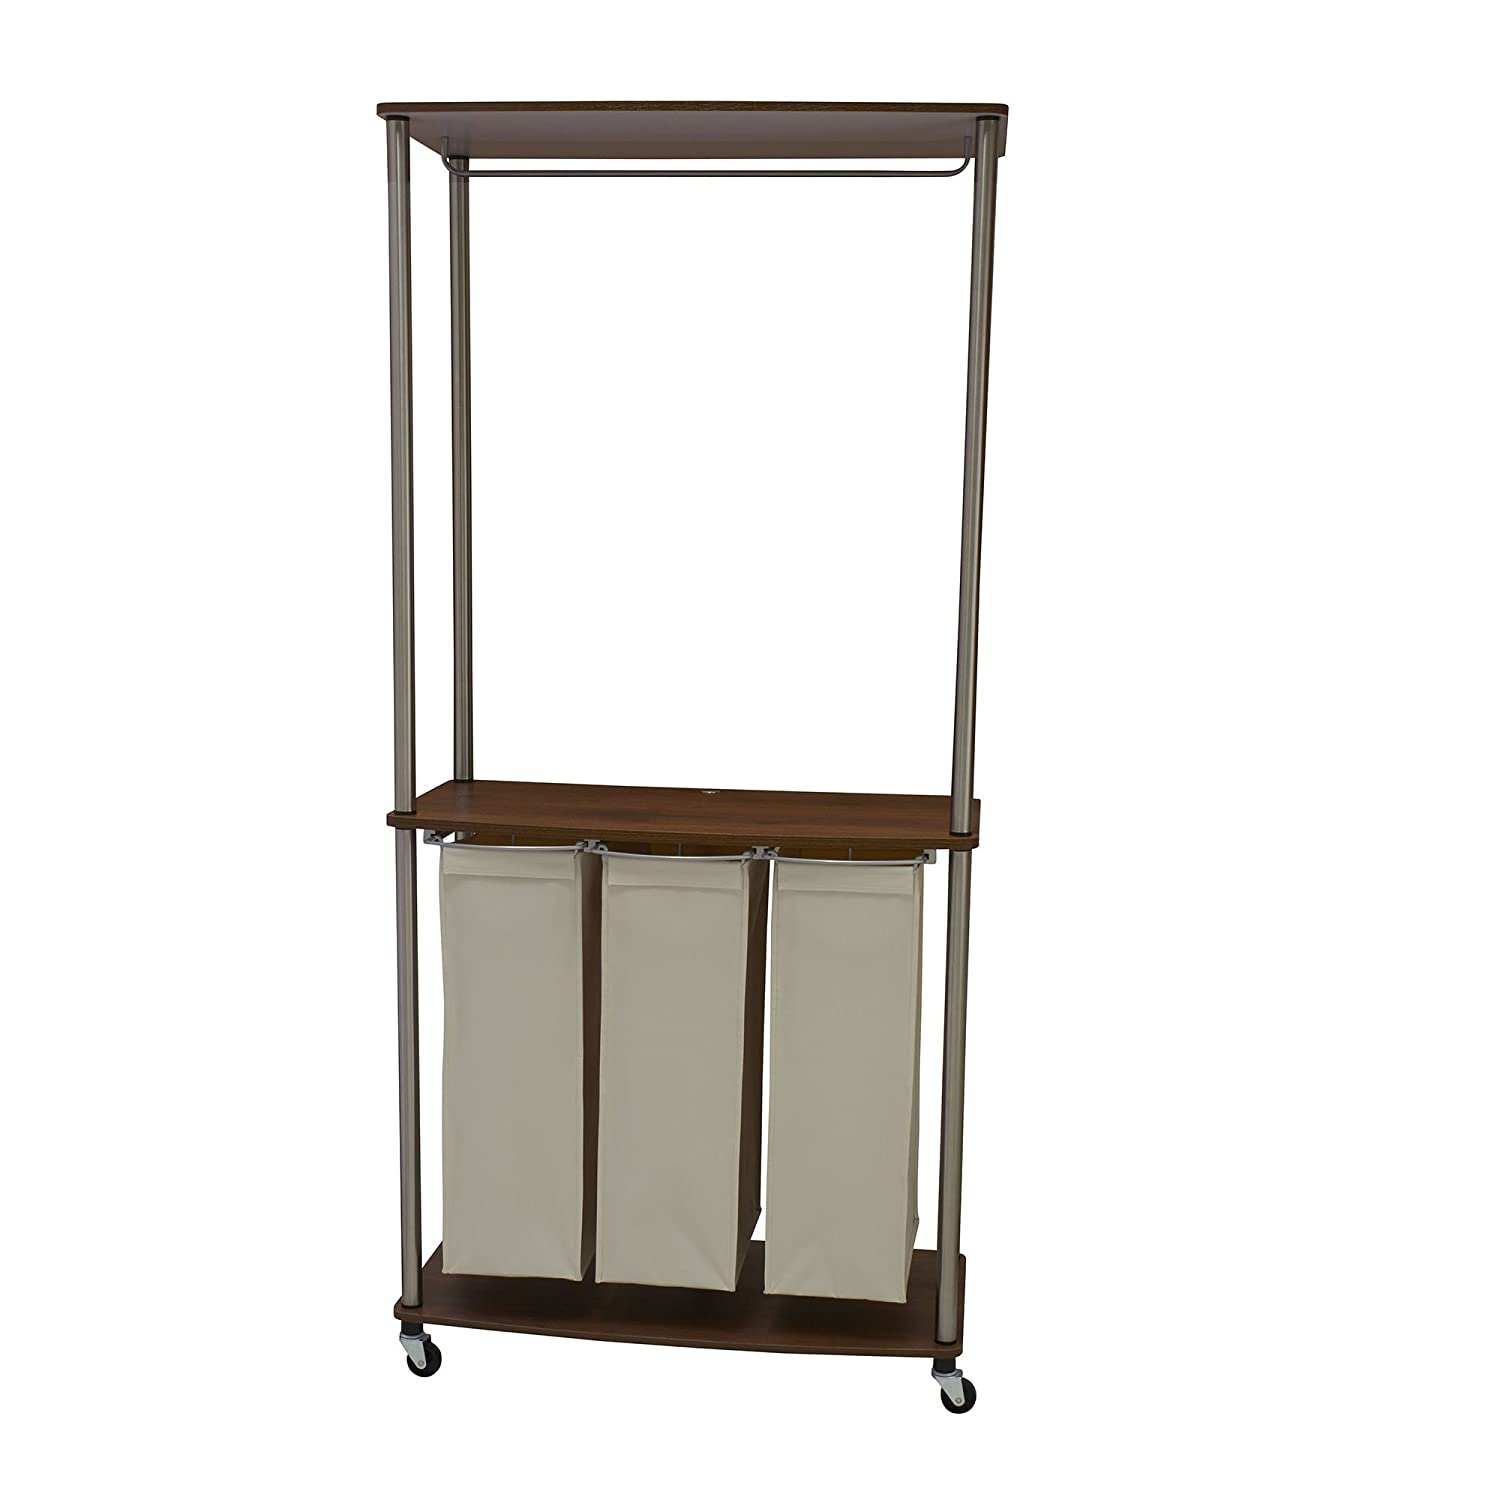 Household Essentials 7061-1 Triple Laundry Center with Folding Table and Clothes Rack, Walnut